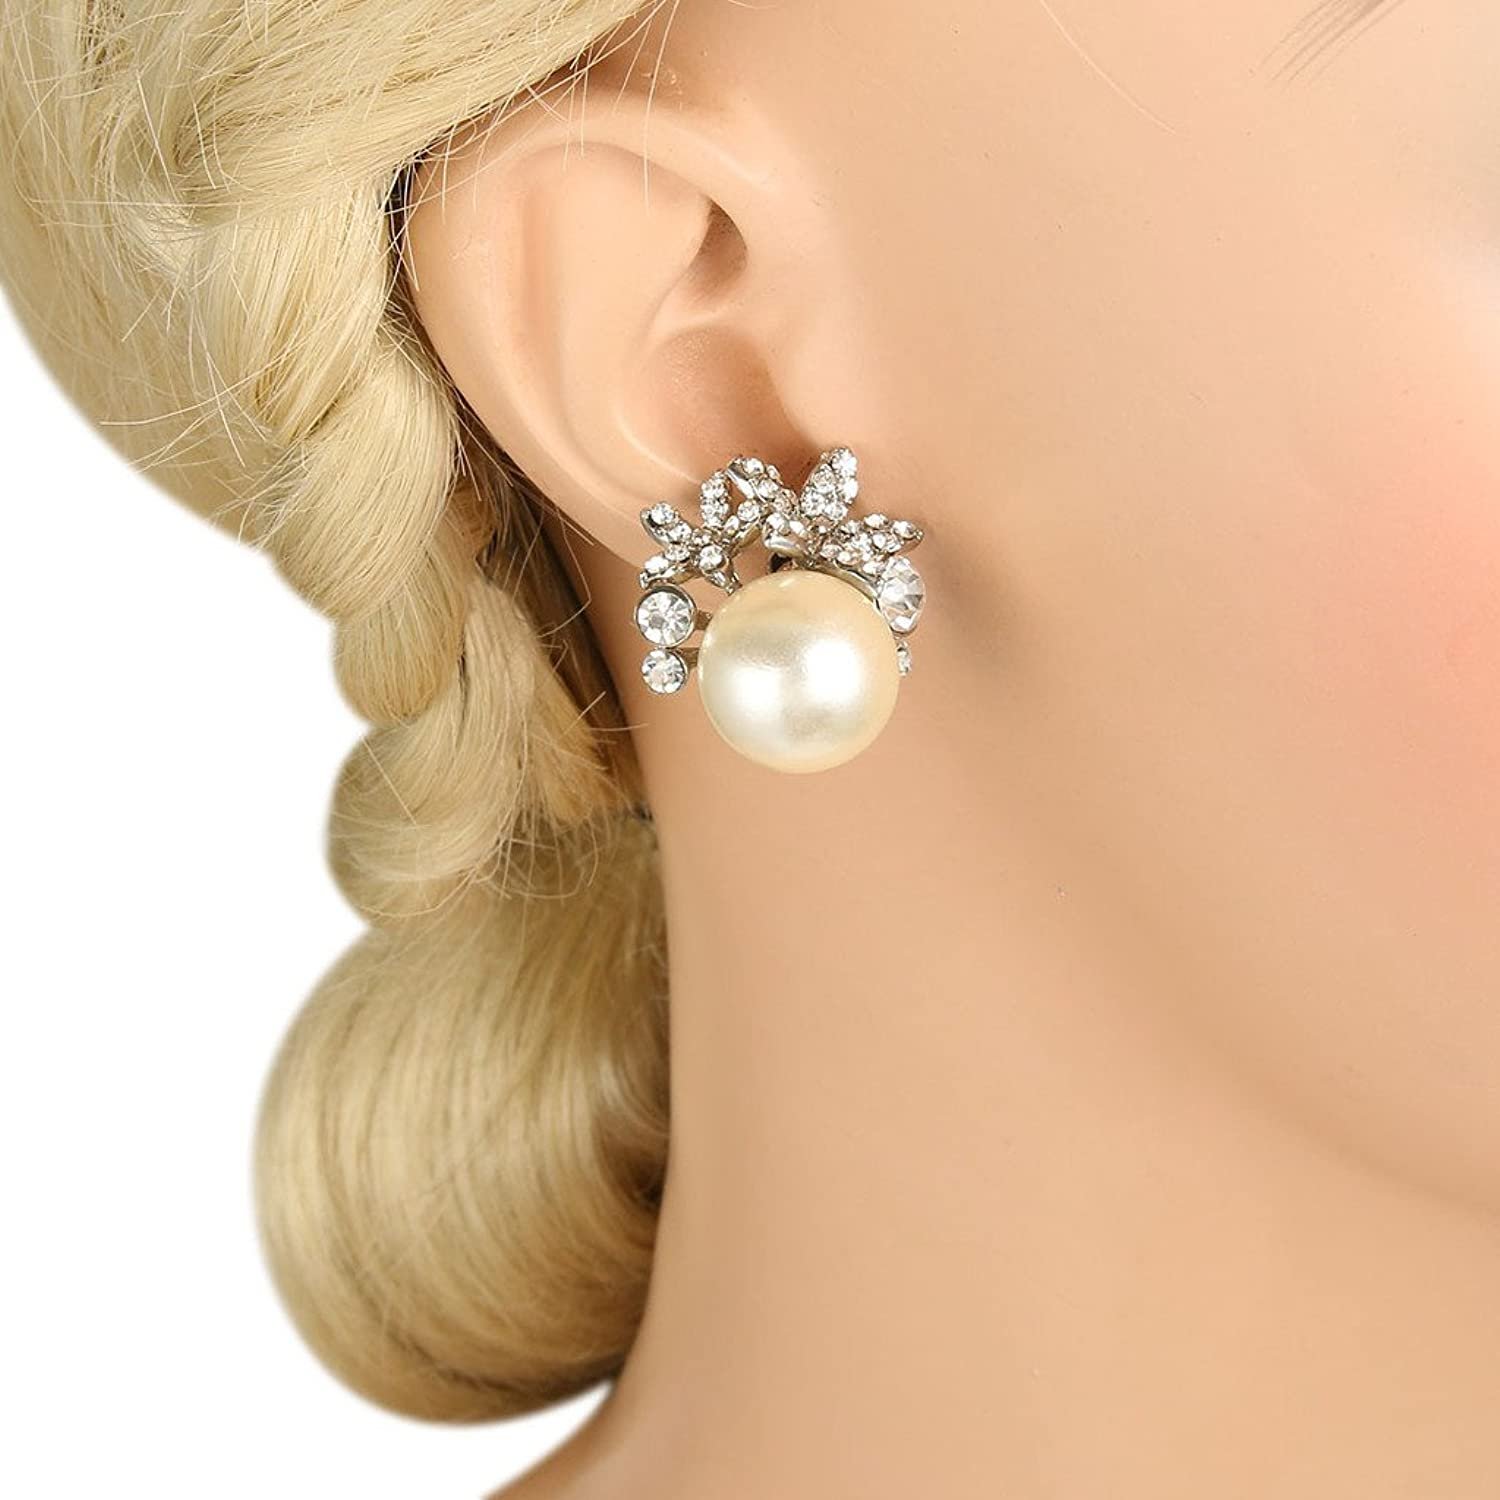 50s Jewelry: Earrings, Necklace, Brooch, Bracelet EVER FAITH Bridal Silver-Tone Flower Simulated Pearl Stud Earrings Austrian Crystal Clear $12.99 AT vintagedancer.com